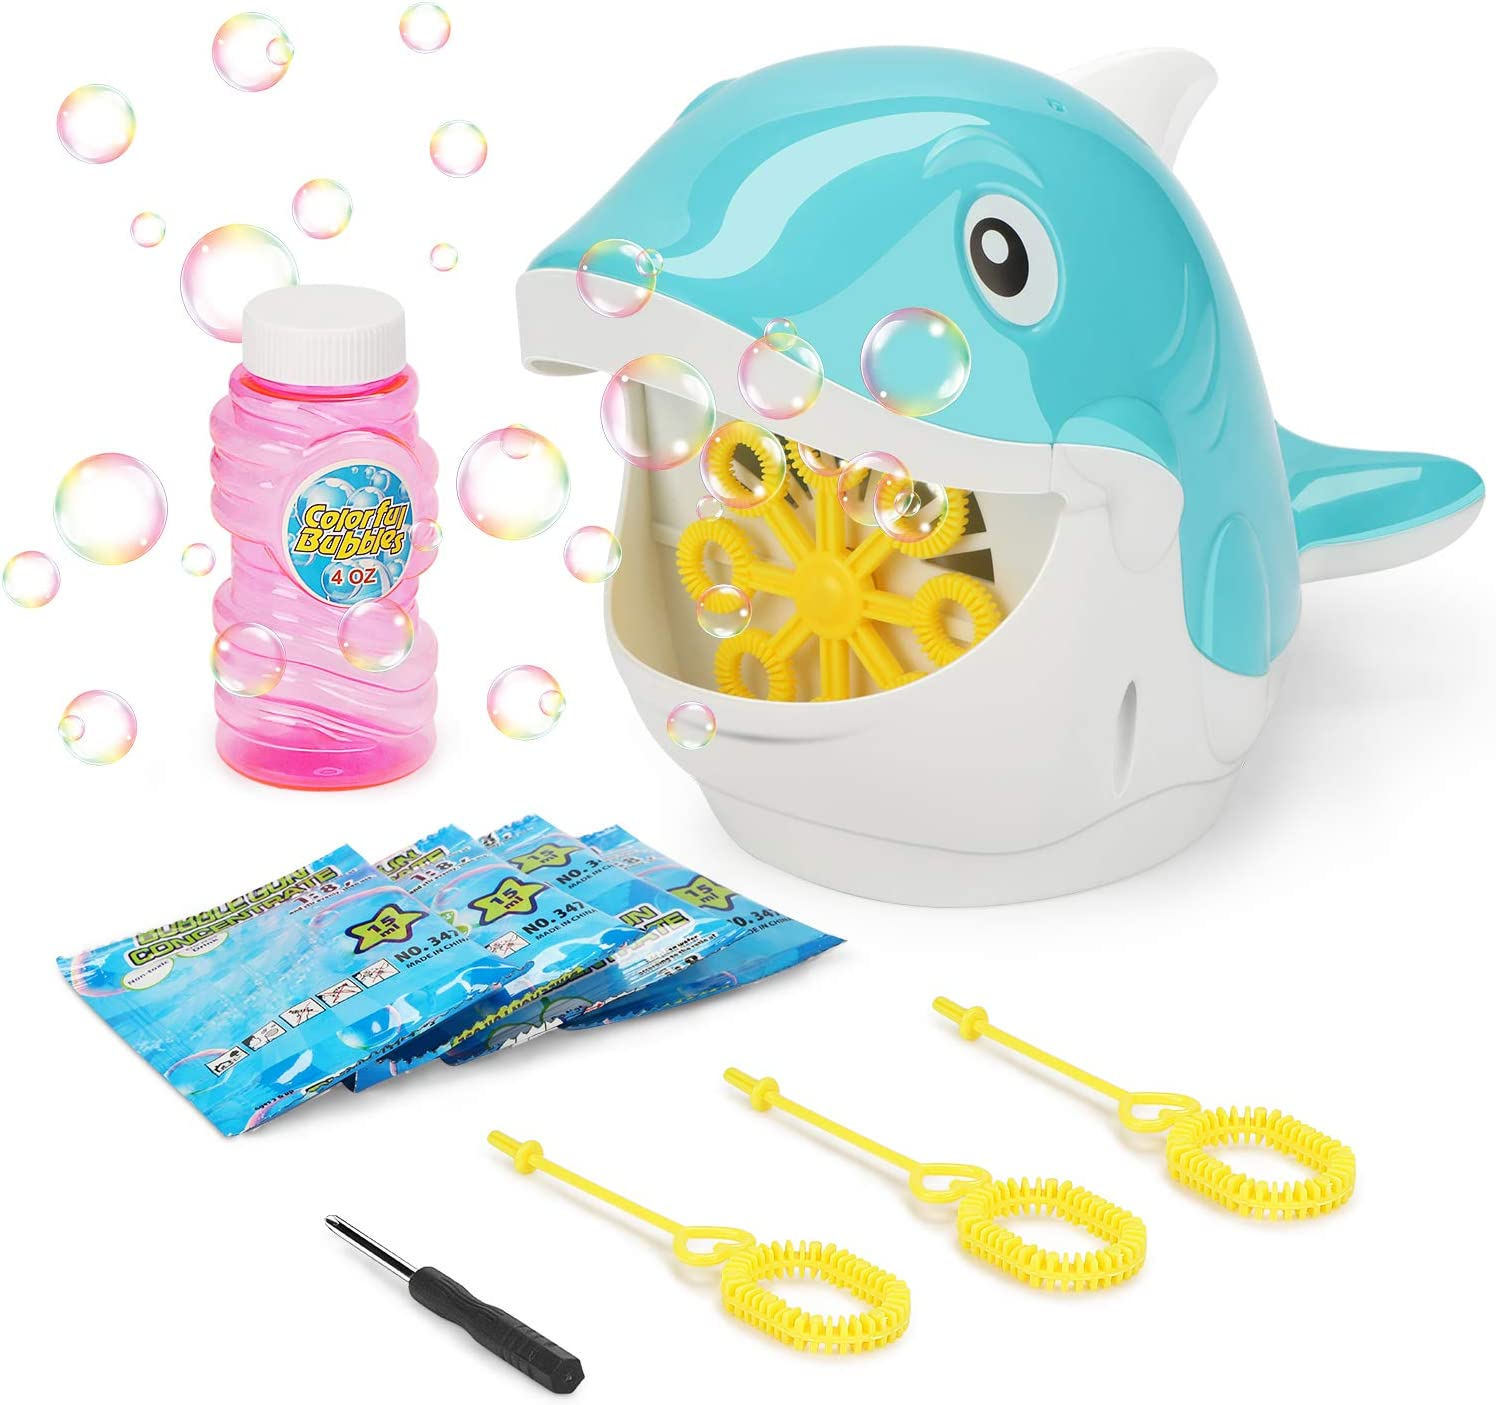 Fansteck Bubble Machine - Bubble Machine for Kids with 4 Bubble Concentrate Solution and 3 Hand Bubble Wands - Automatic Durable Bubble Blower 2000+ Bubble Maker for Christmas, Parties (Shark Shape)